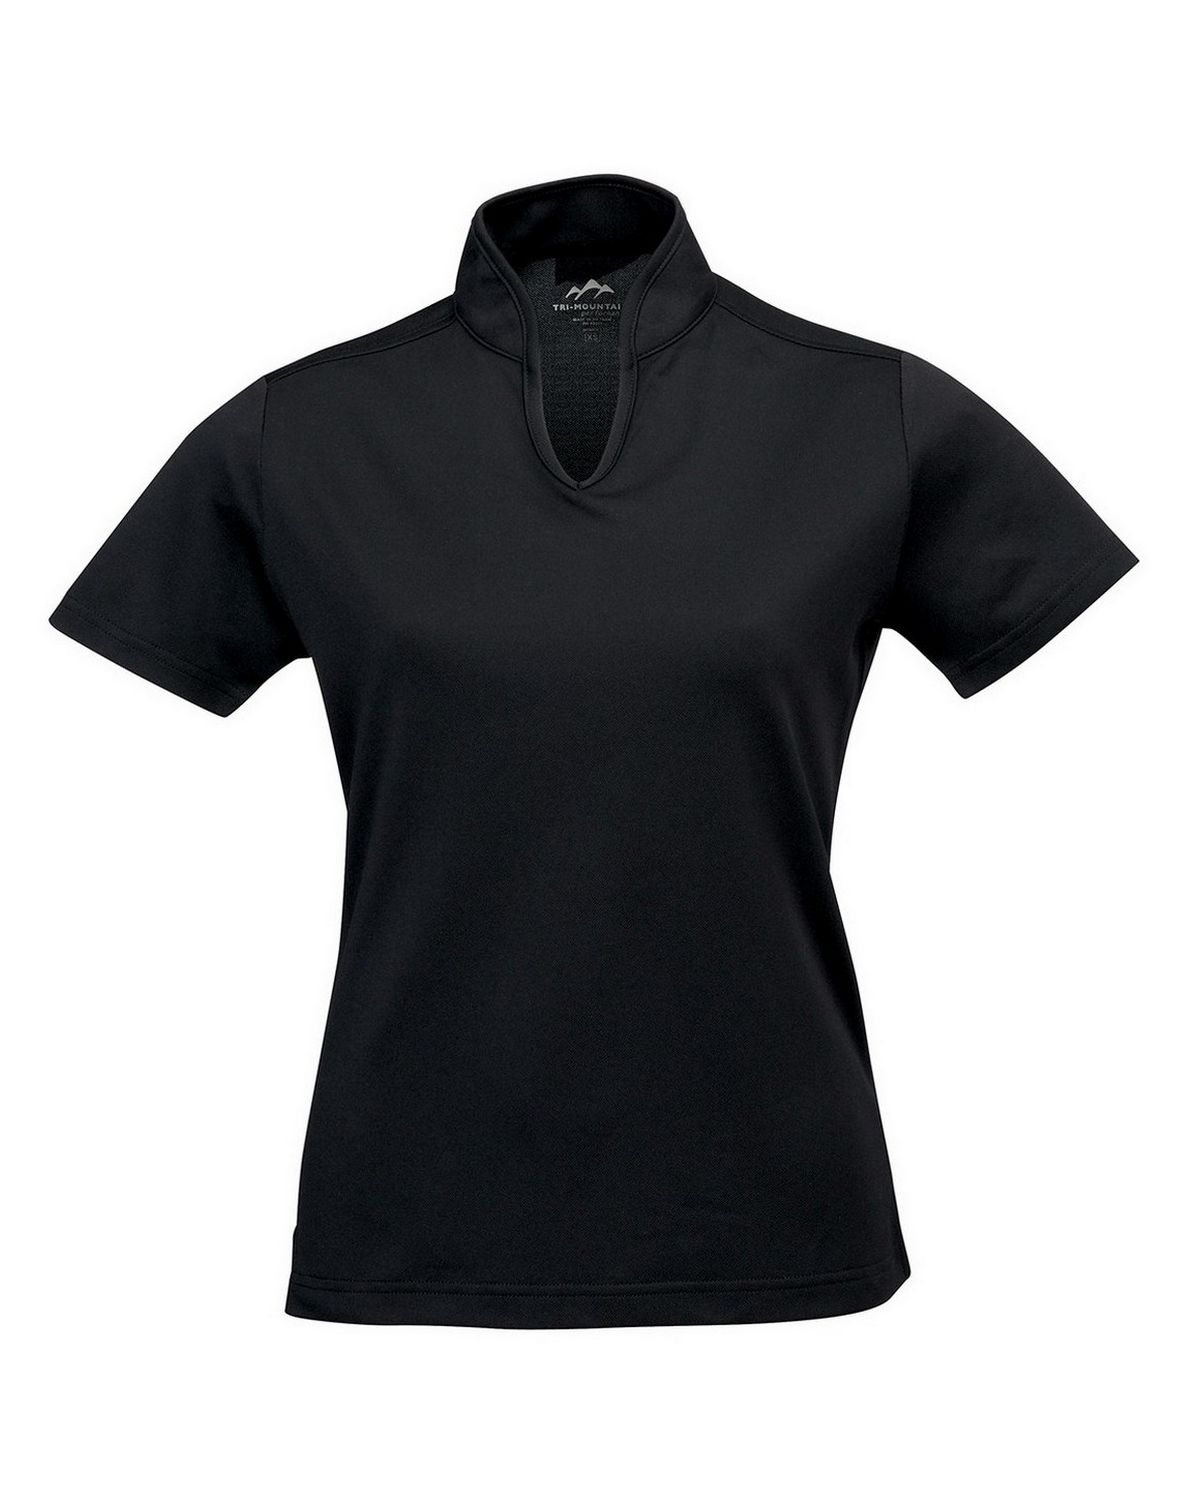 Tri-Mountain Performance 051 Acoro - Black - XL 051